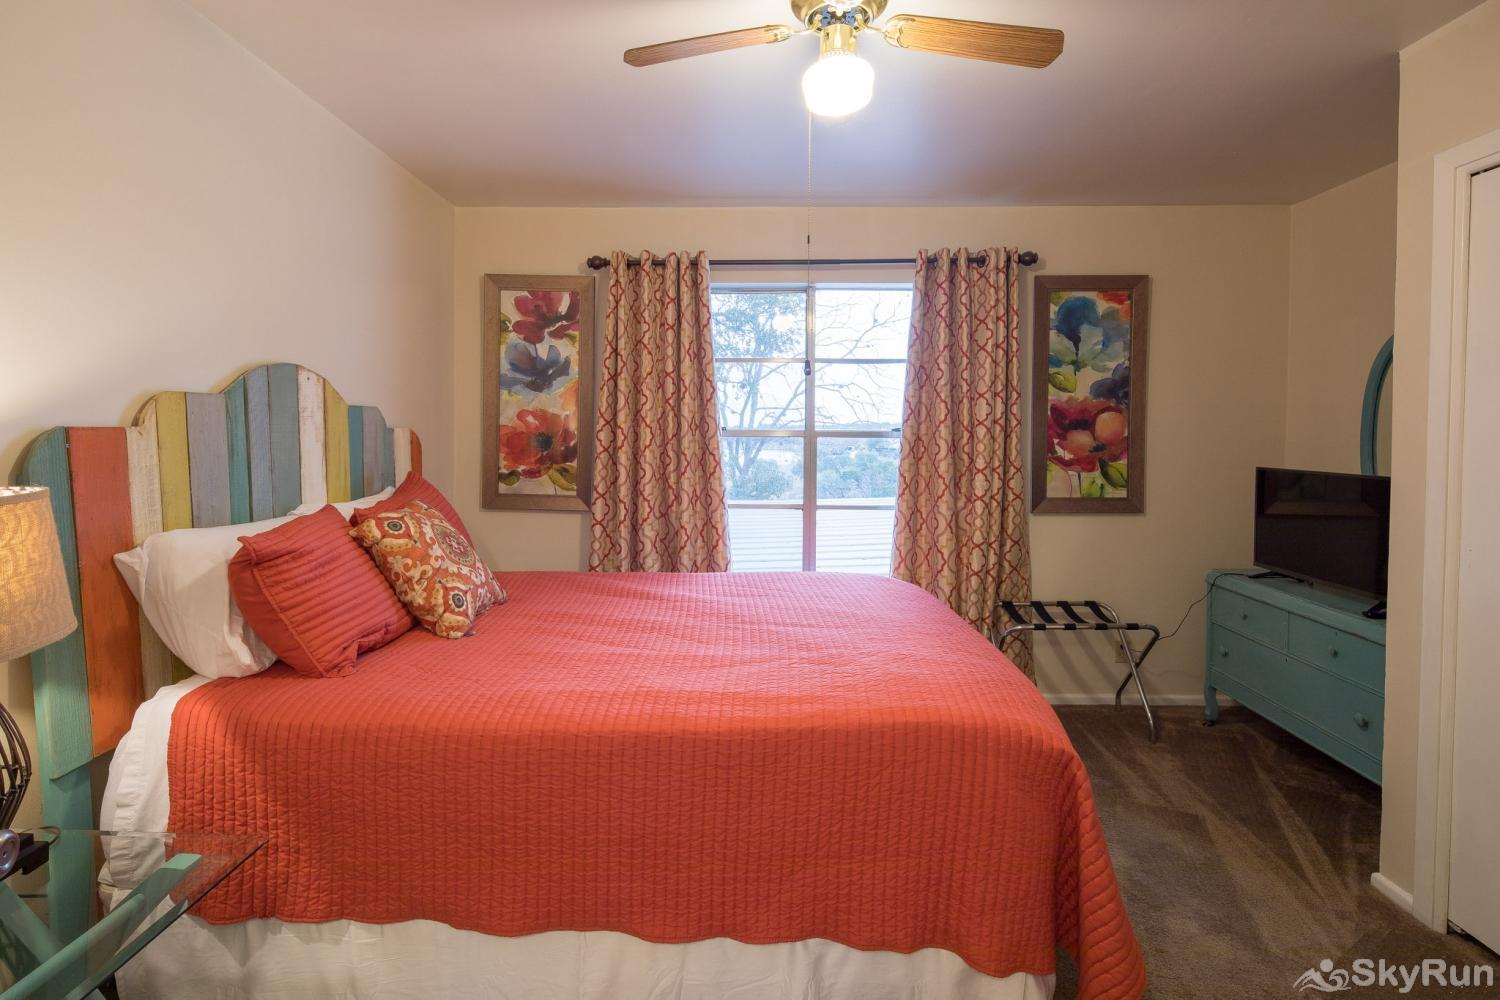 TEXAS ROSE LODGE First bedroom with comfy queen bed and TV